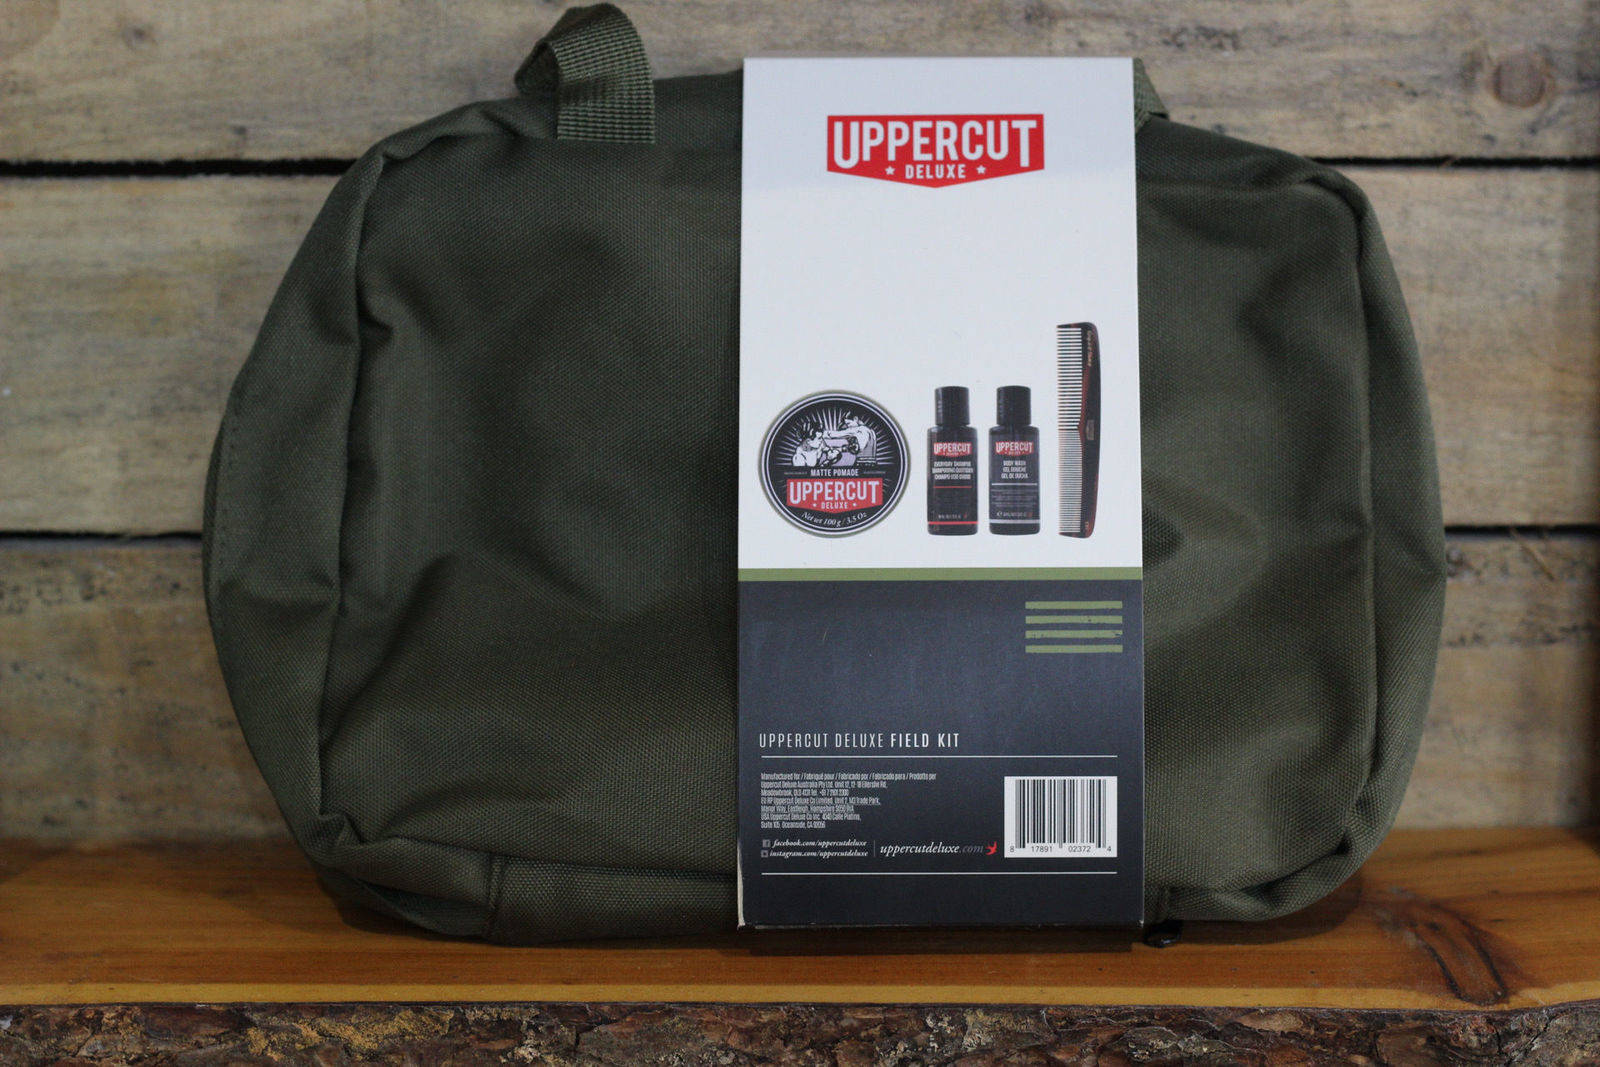 Uppercut Deluxe Field Kit